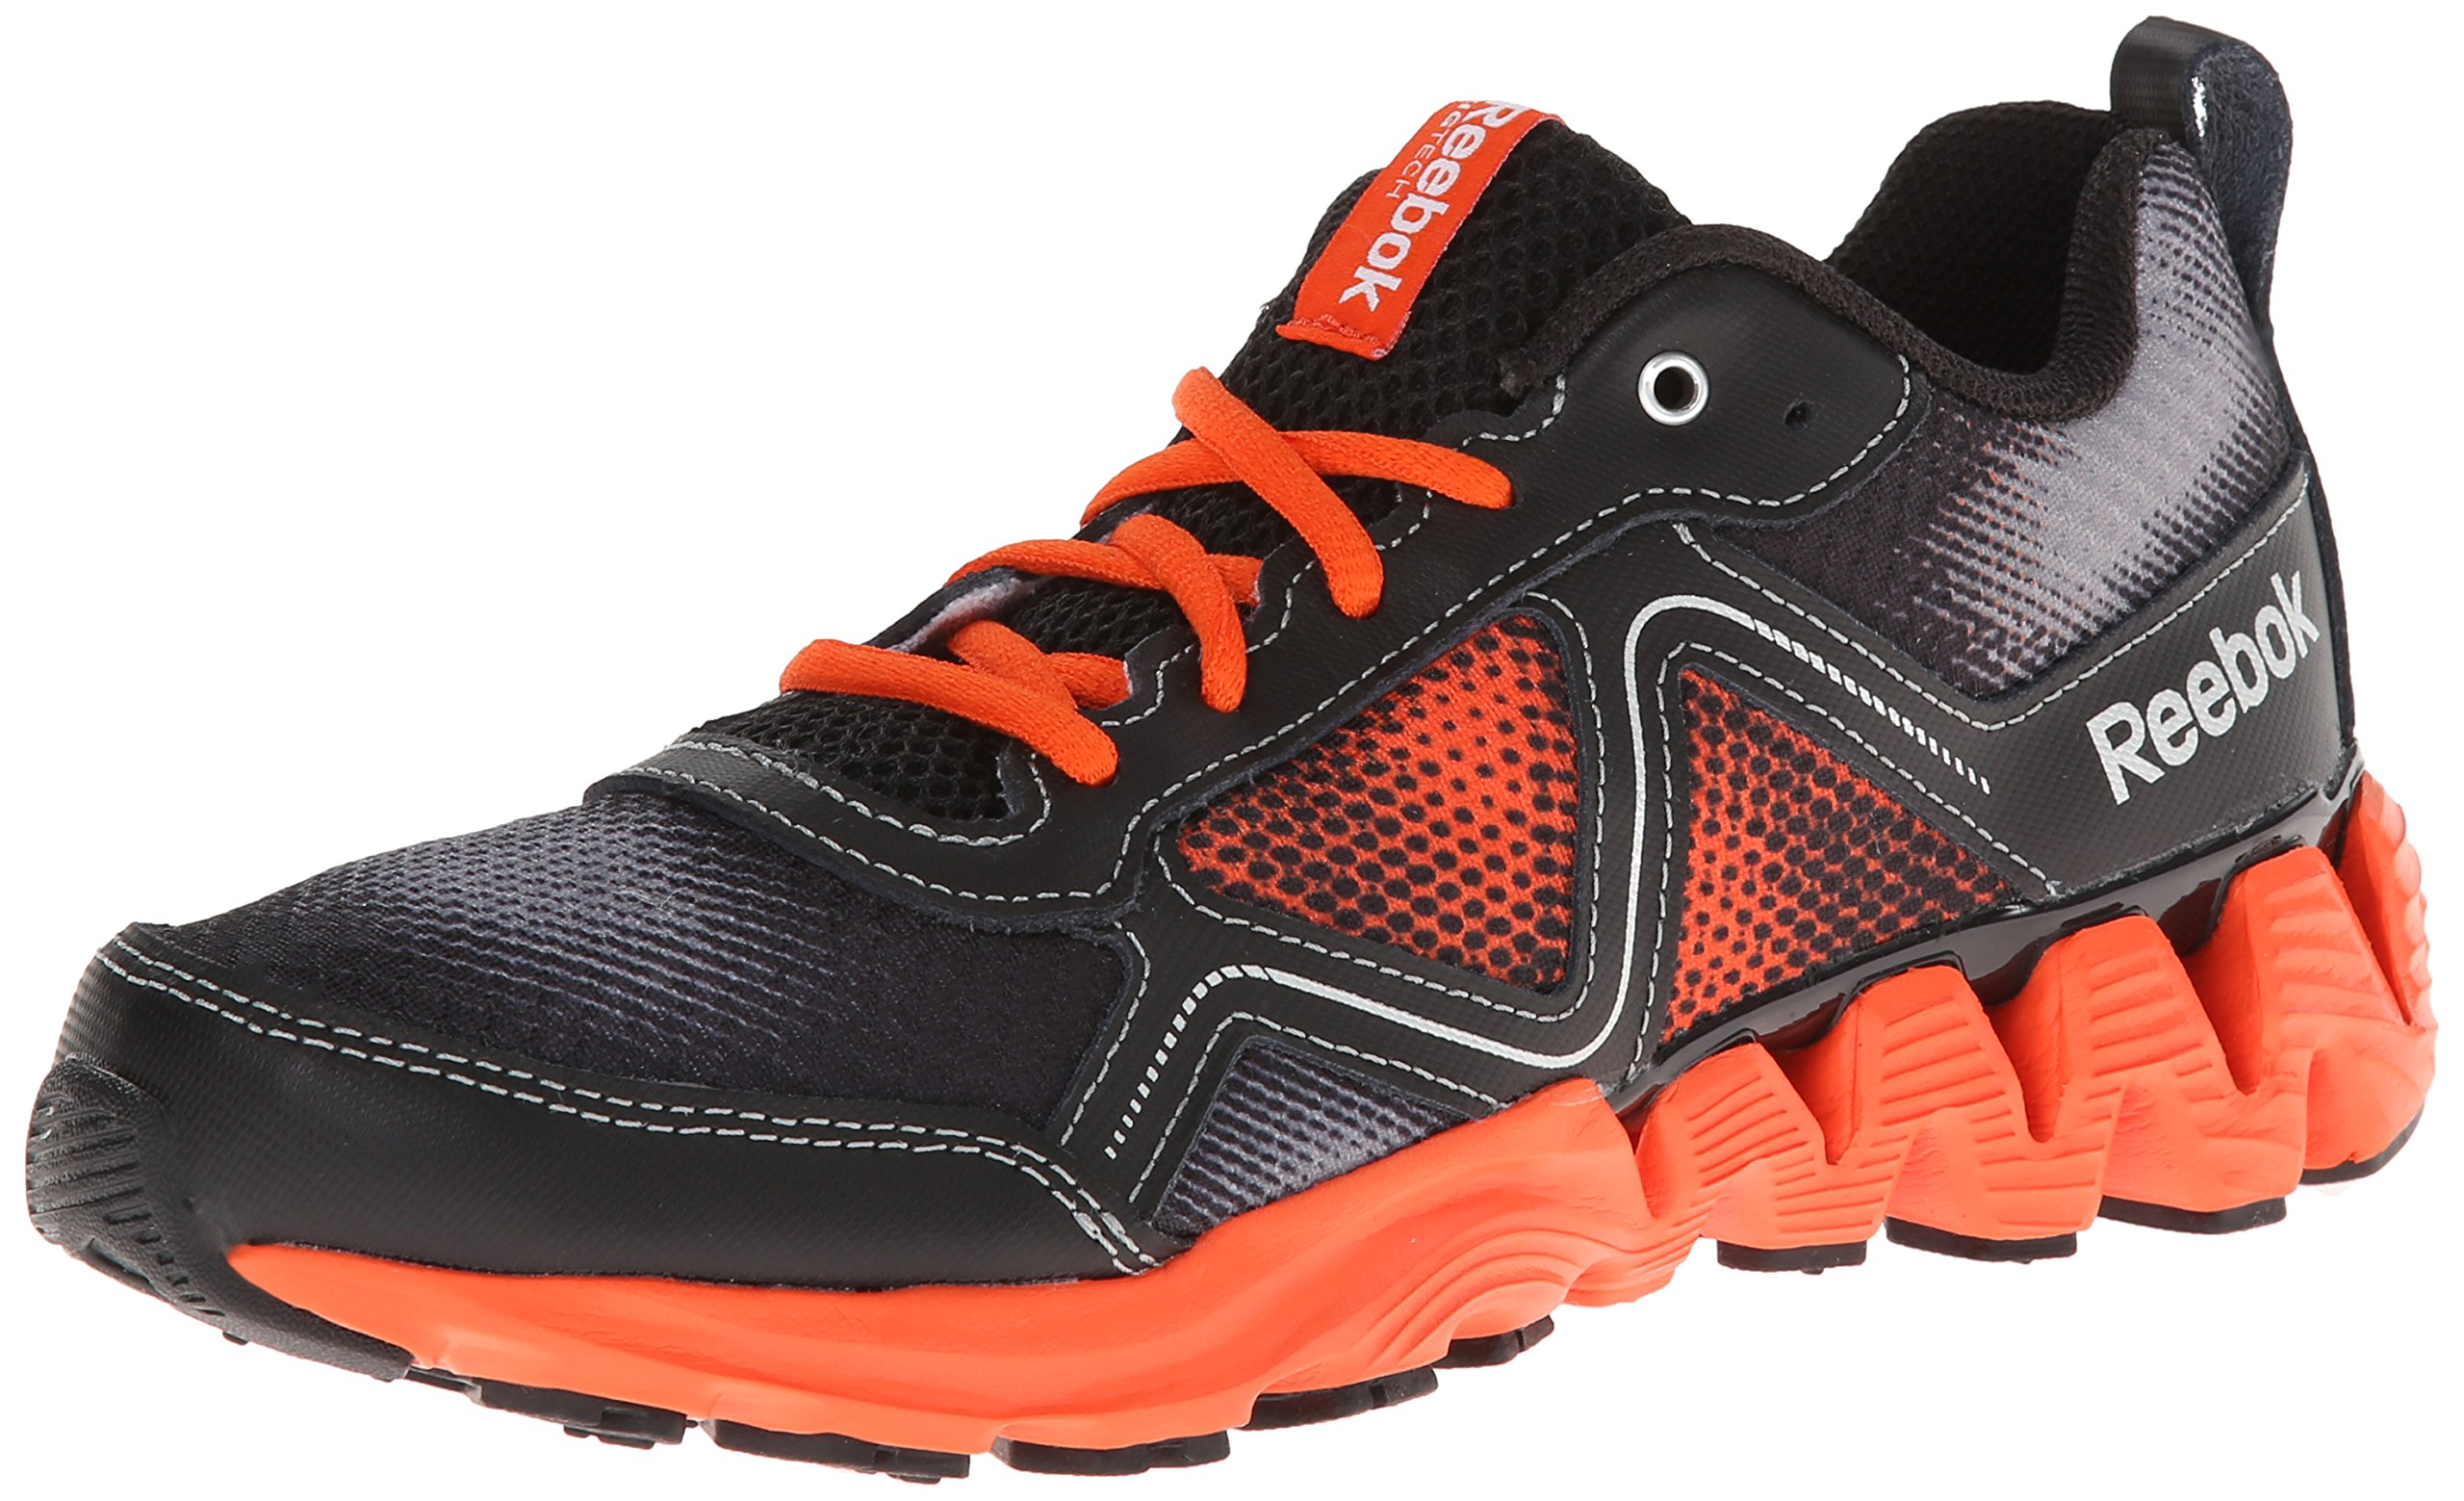 Reebok Zigkick Wild Running Shoe,Flat Grey/Flux Orange/Black/Silver Metallic,12.5 M US Little Kid